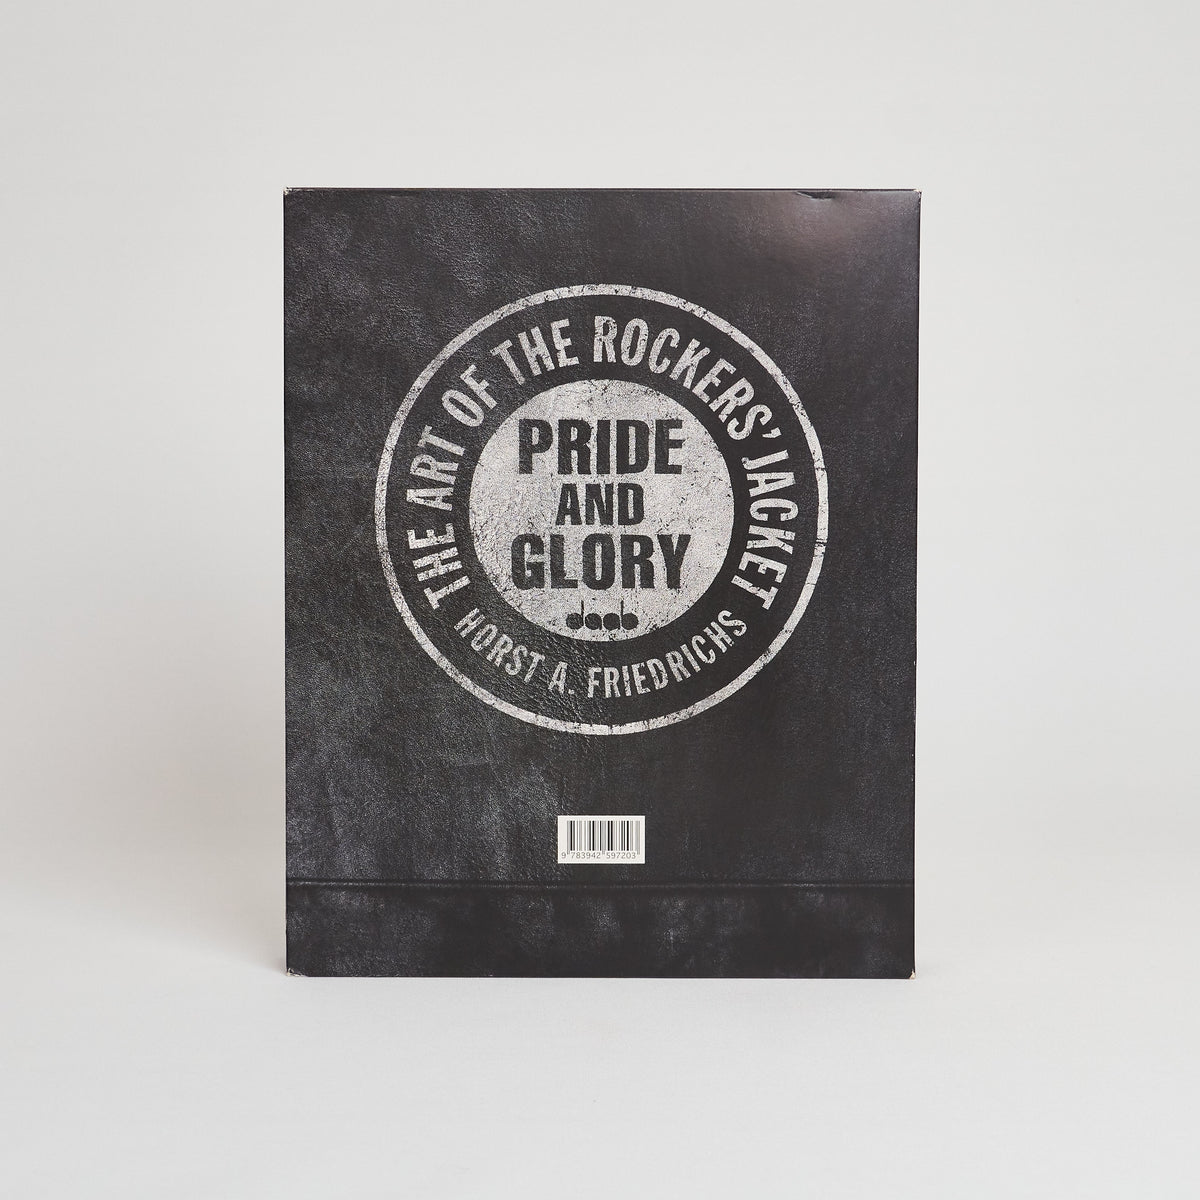 Pride And Glory – The Art of The Rocker's Jacket, Horst A. Friedrichs